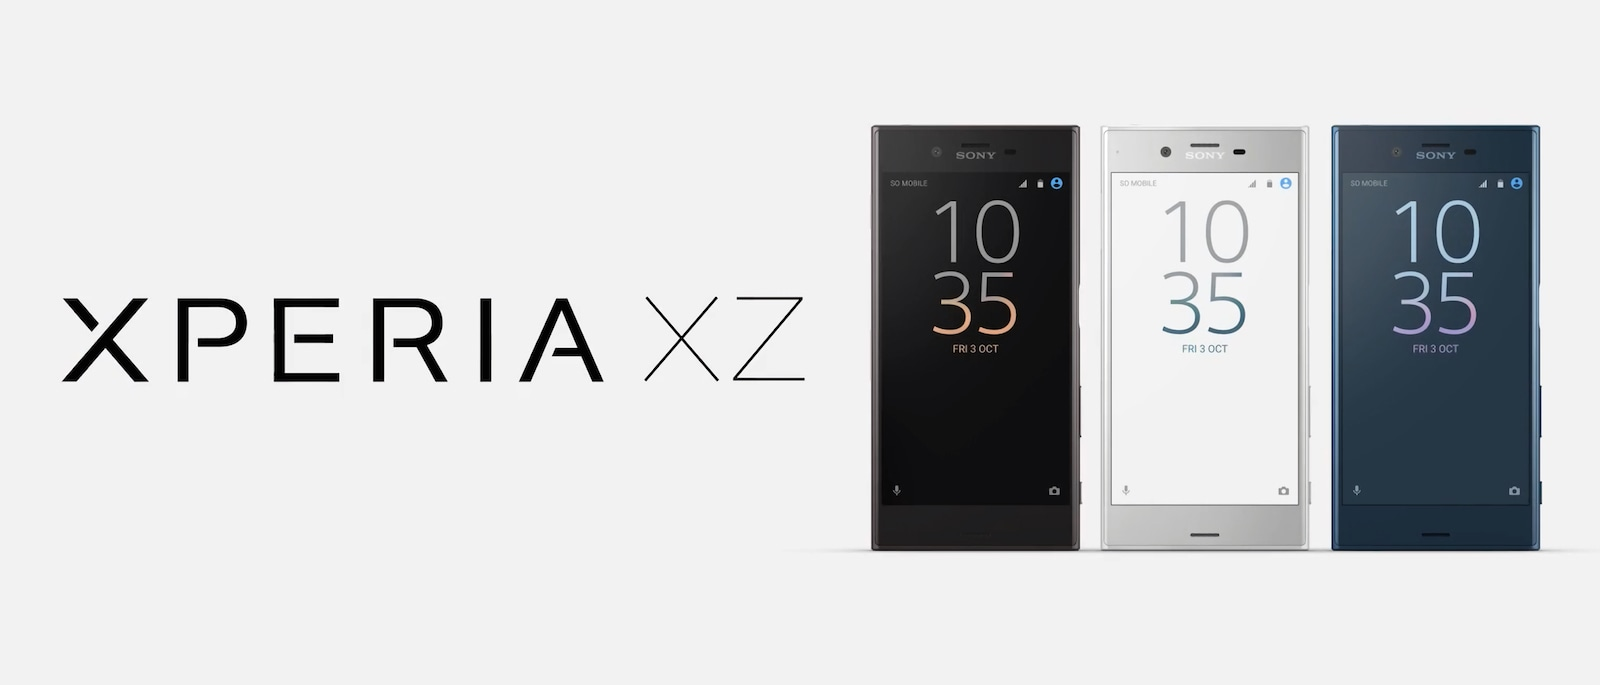 xperia-xz-logo-and-image.jpg